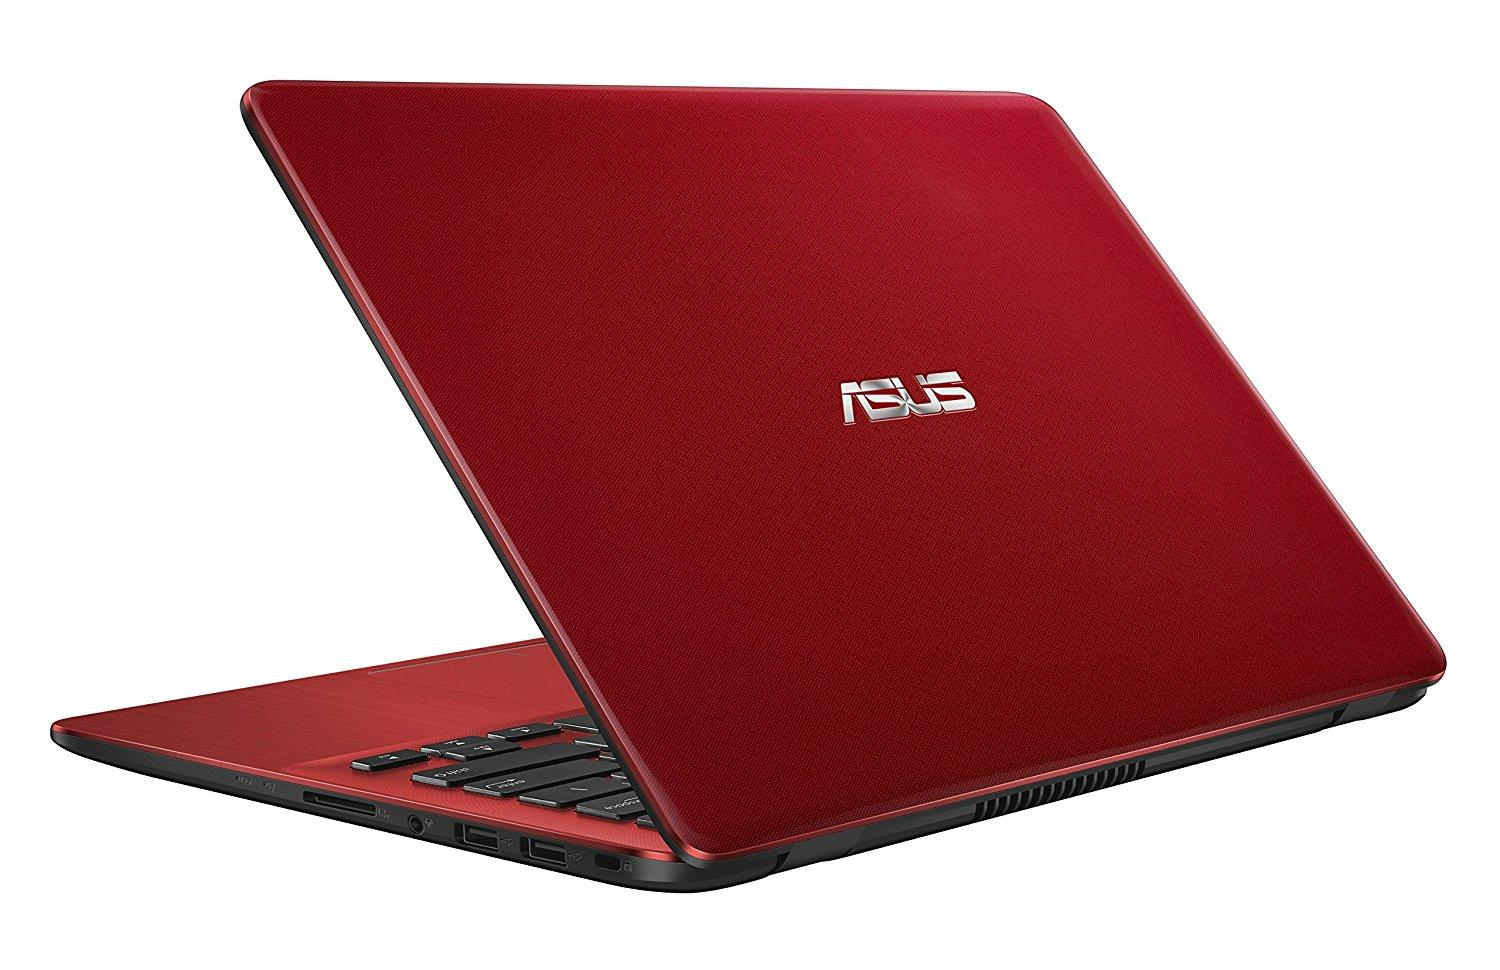 asus vivobook x405ua eb716t rouge les meilleurs prix. Black Bedroom Furniture Sets. Home Design Ideas